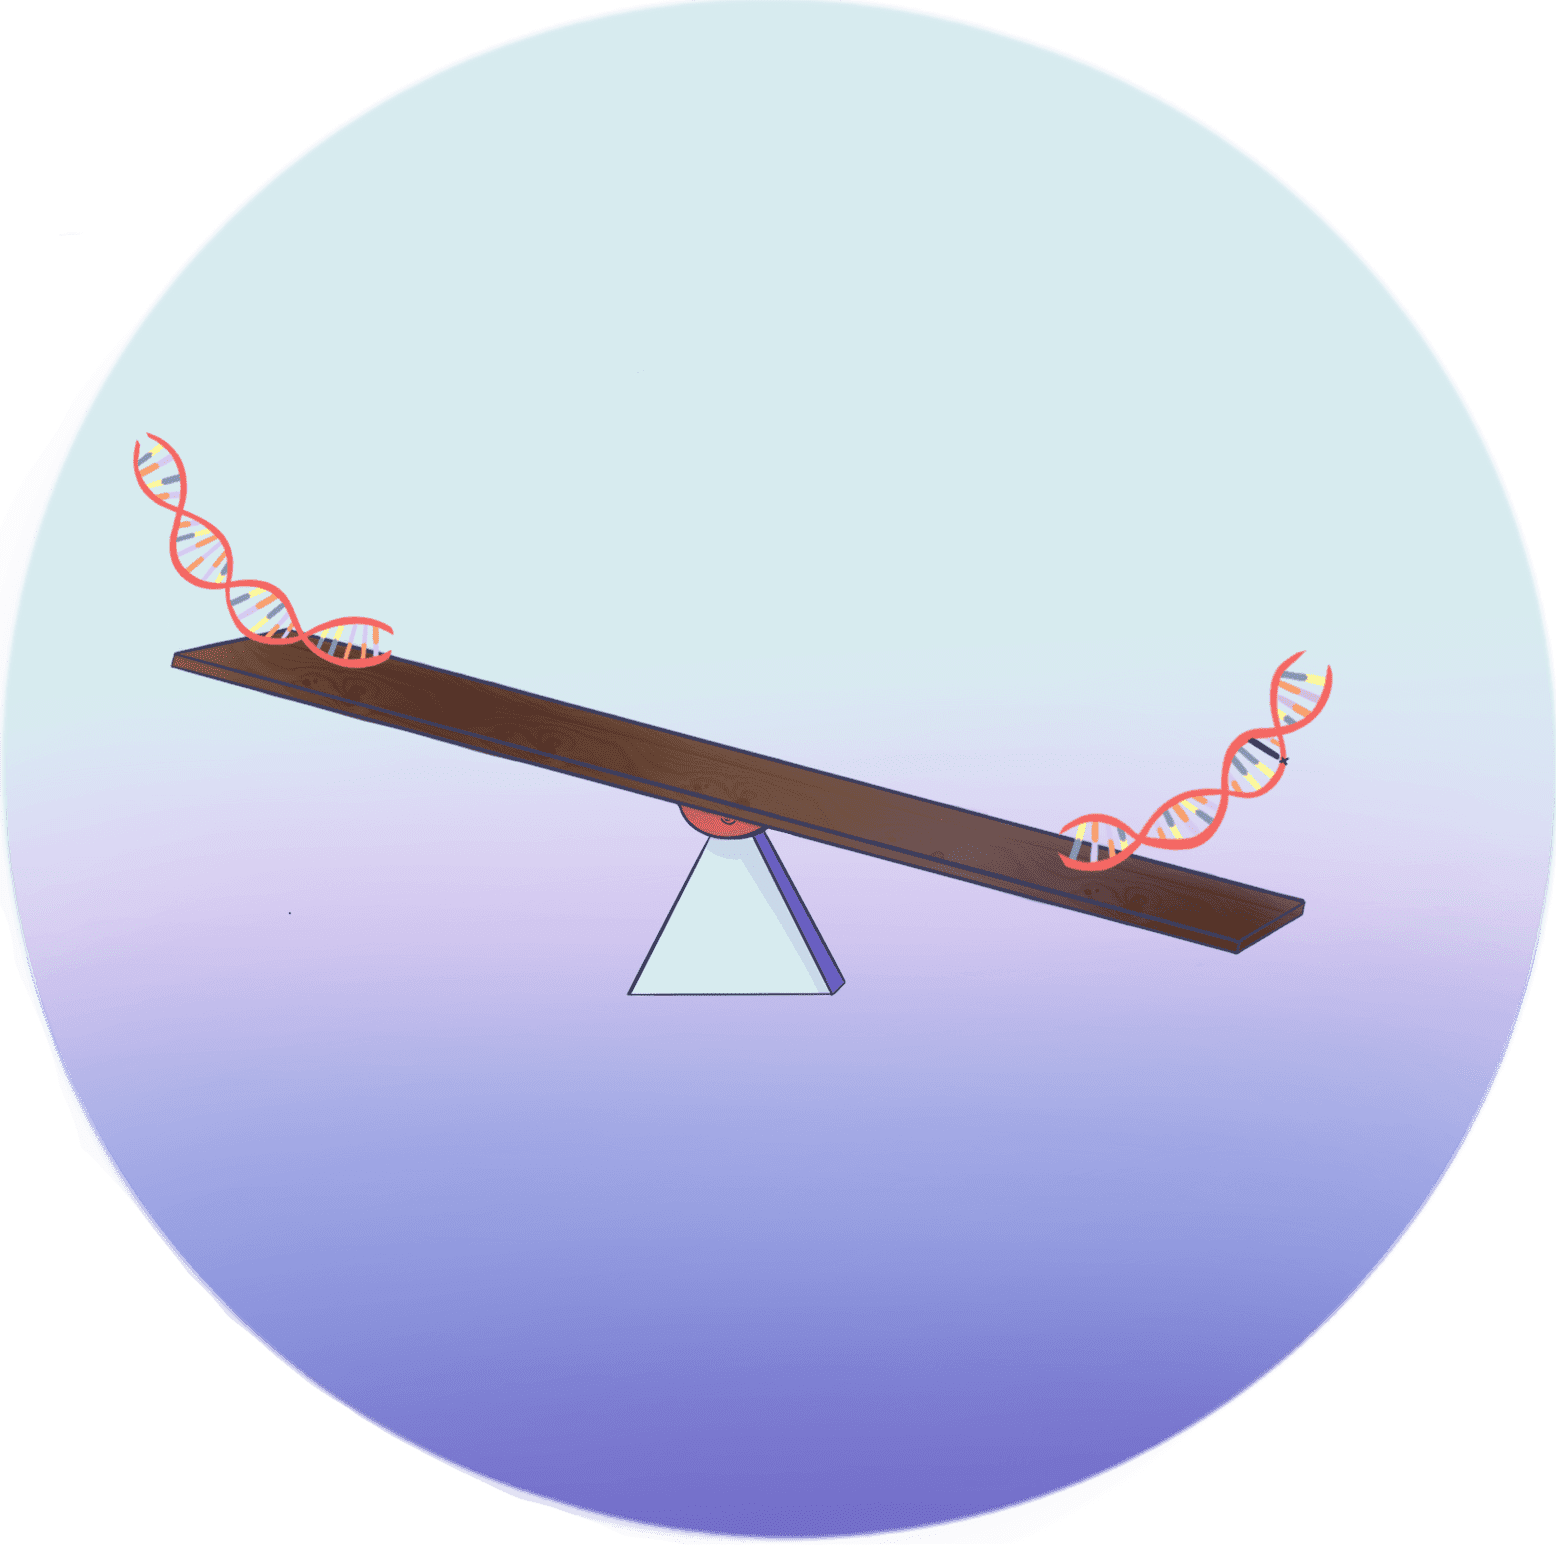 Illustration of DNA on a seesaw. One strand has a mutation that tips the seesaw down, indicating tipping the balance into disease